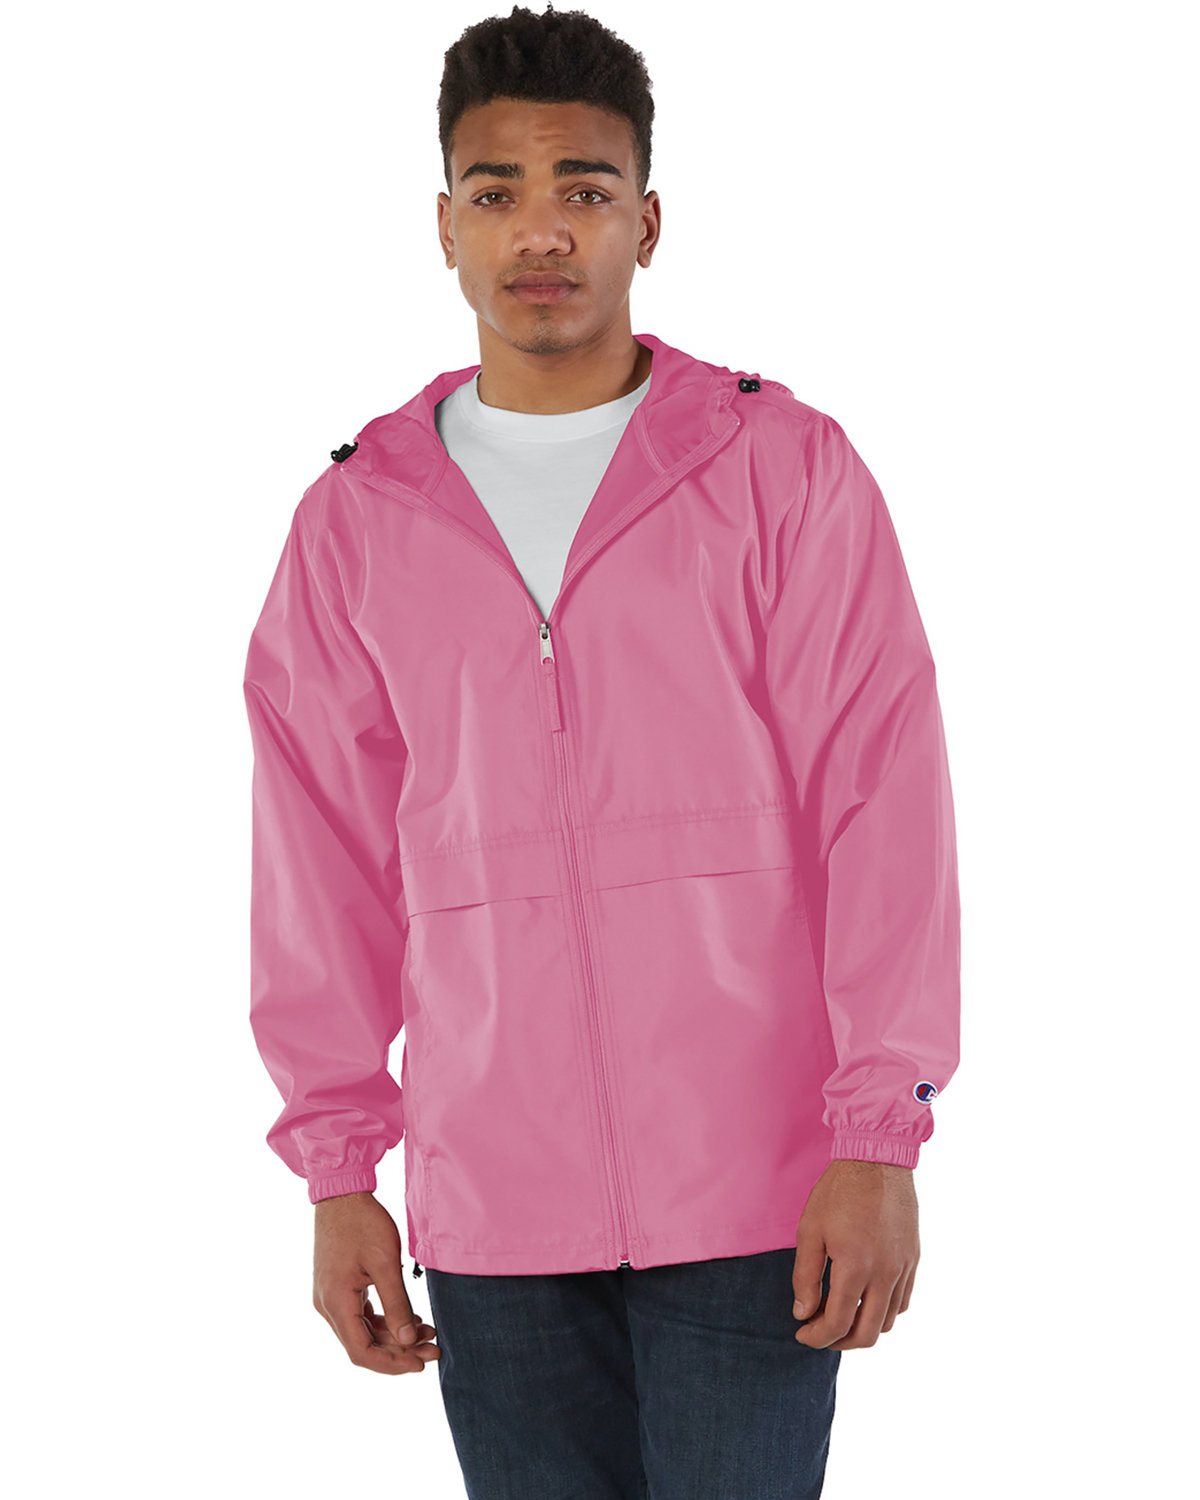 Champion Adult Full-Zip Anorak Jacket PINK CANDY